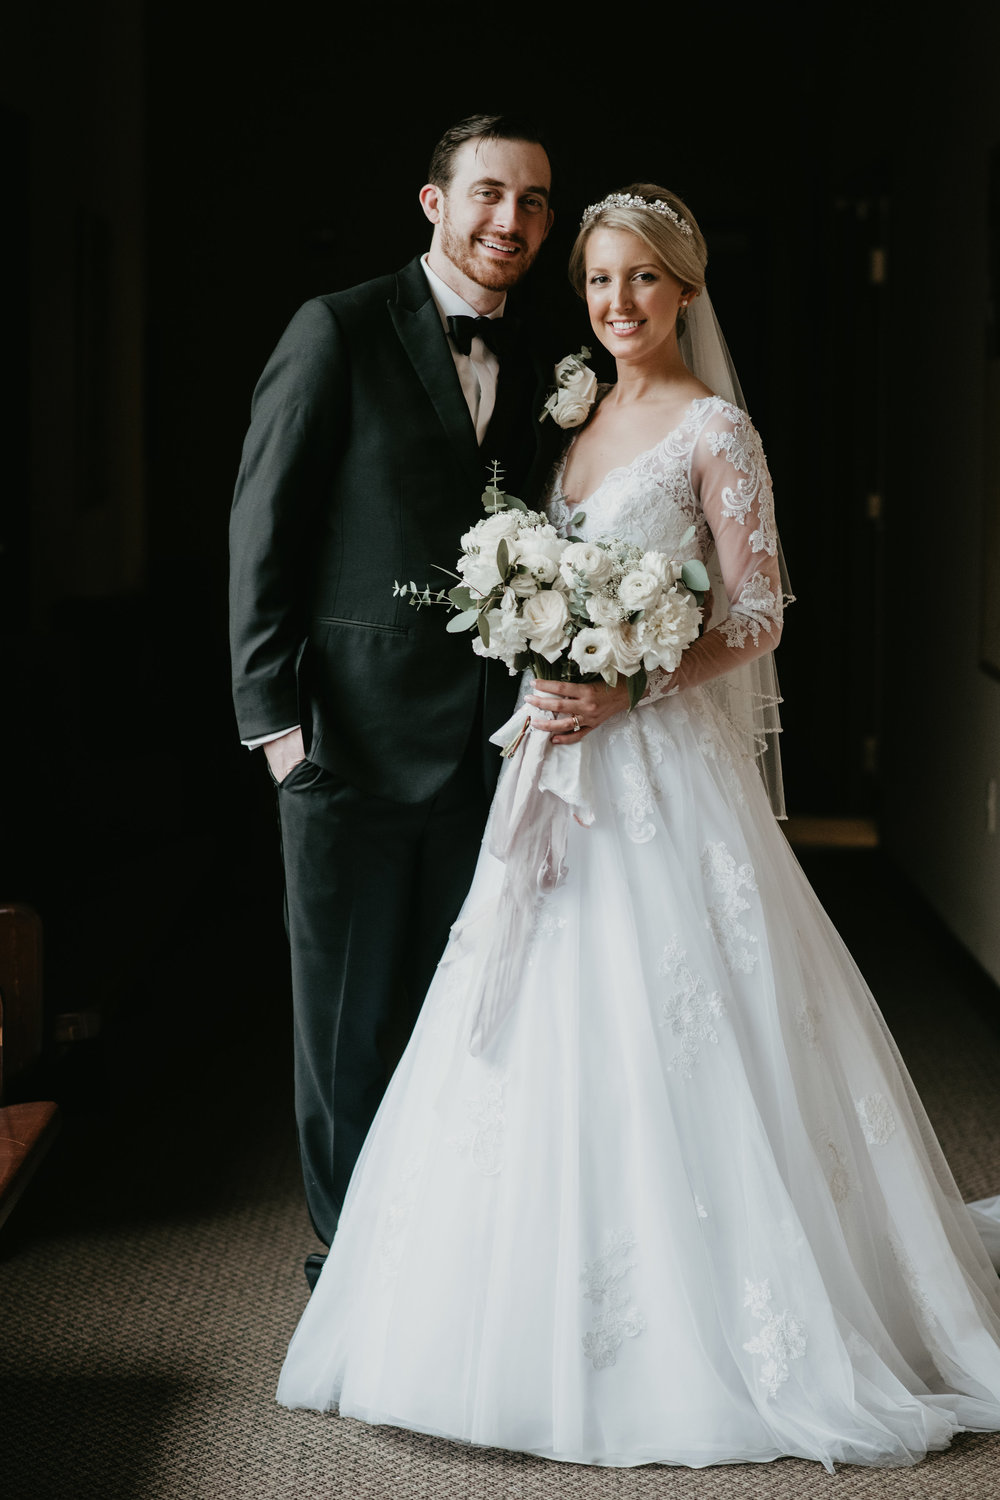 Patterson_Wedding_Bride_Groom_Portraits_0026.jpg